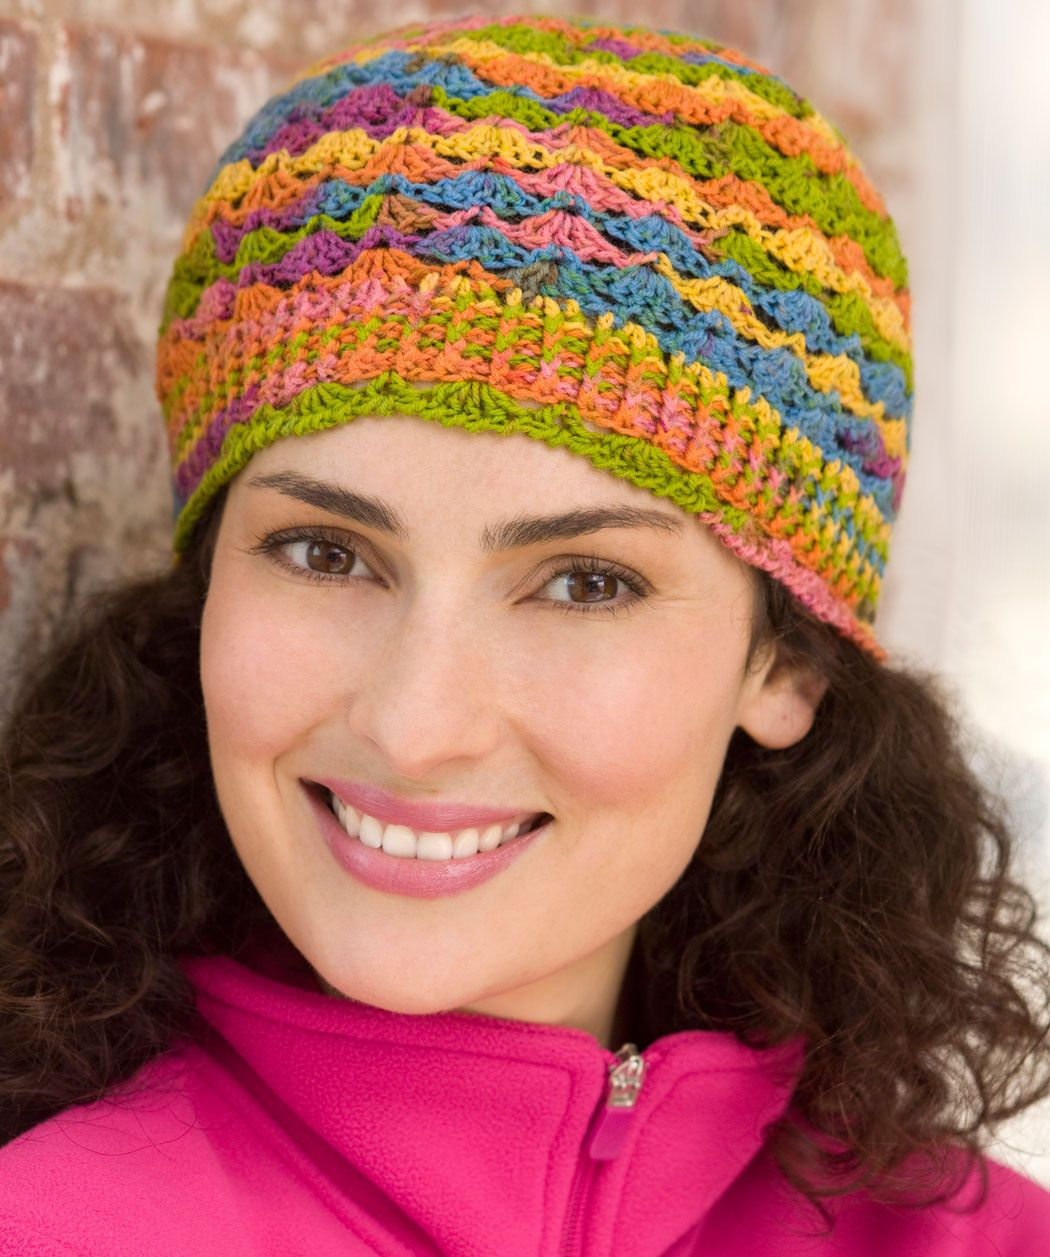 free pattern for this hat   Crochet, Crochet hats, Crochet gloves ...